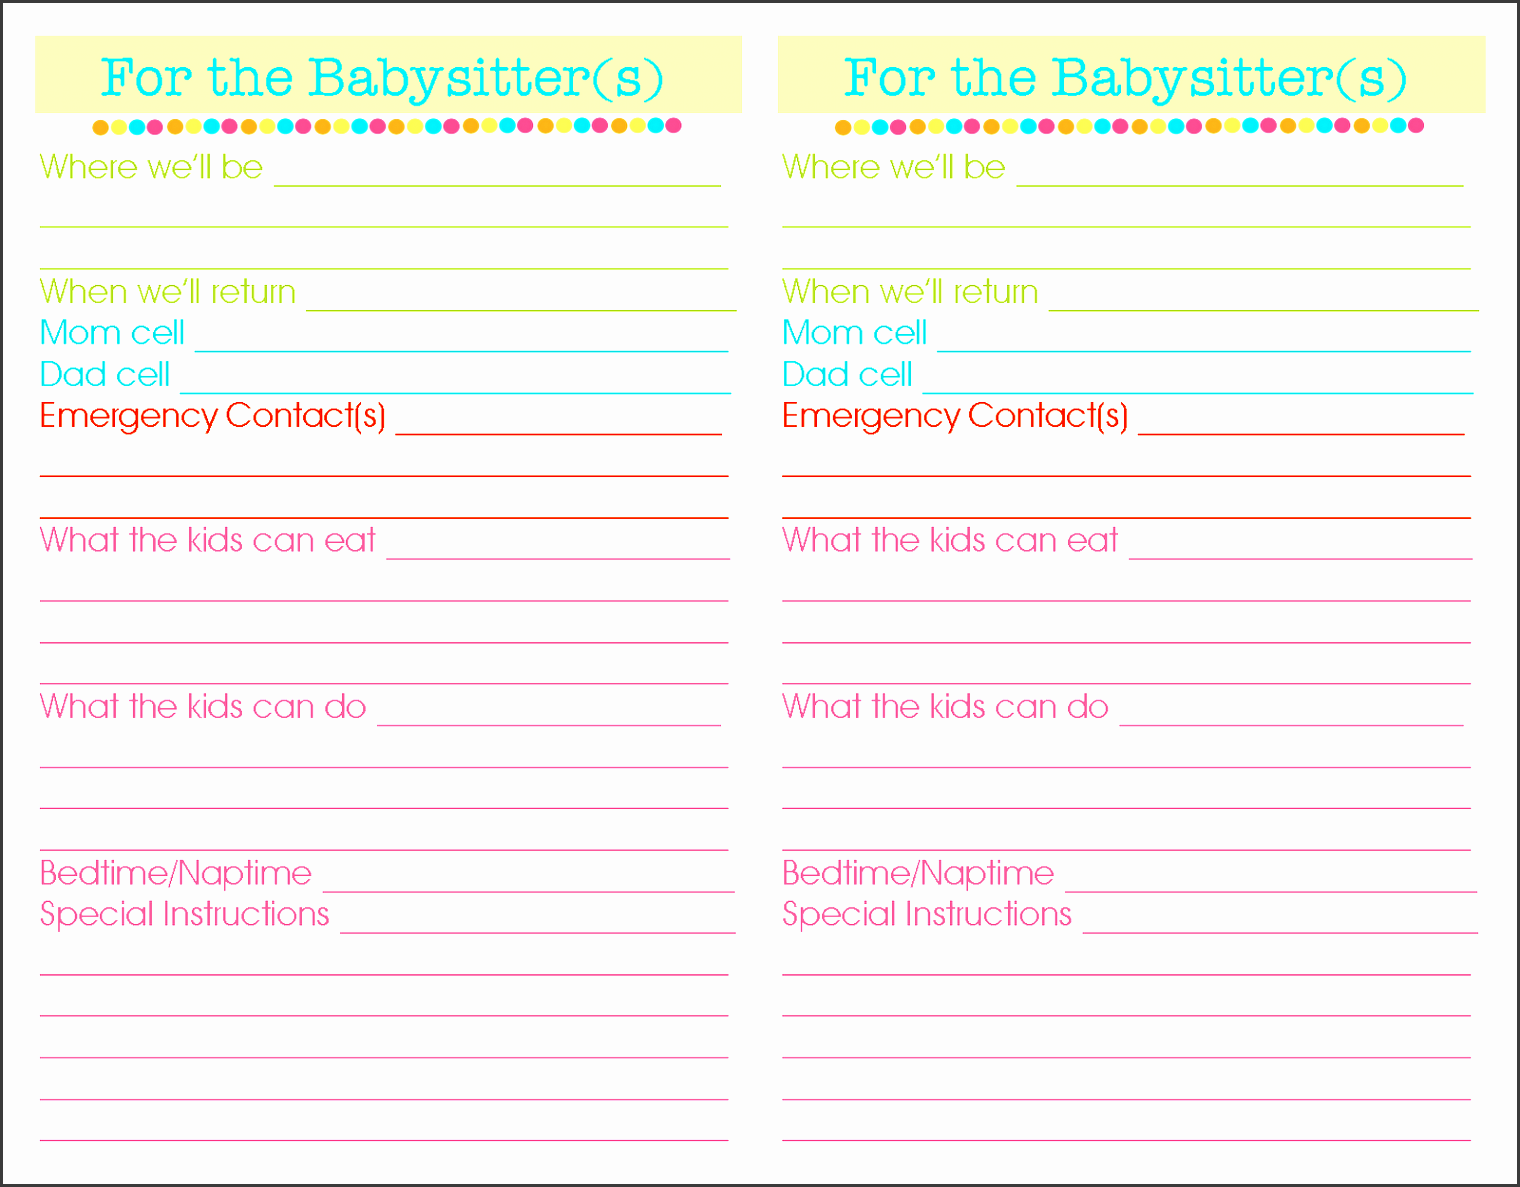 Info Sheet Template Client Info Sheet Template Babysitter Instructions  Template Babysitter Information Template Babysitting Instructions Templates  Info Sheet Template